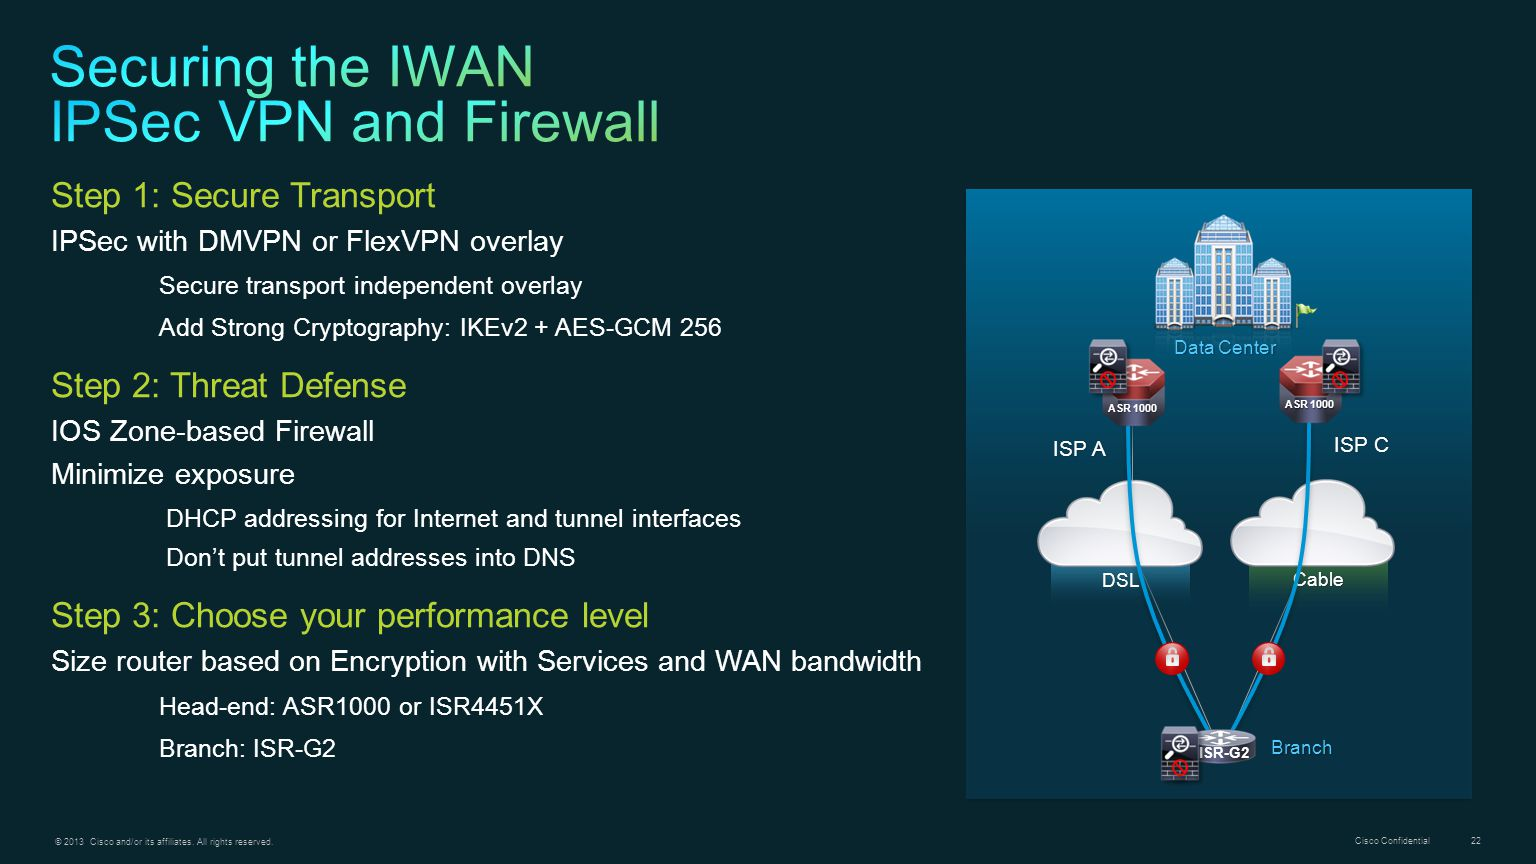 Securing the IWAN IPSec VPN and Firewall